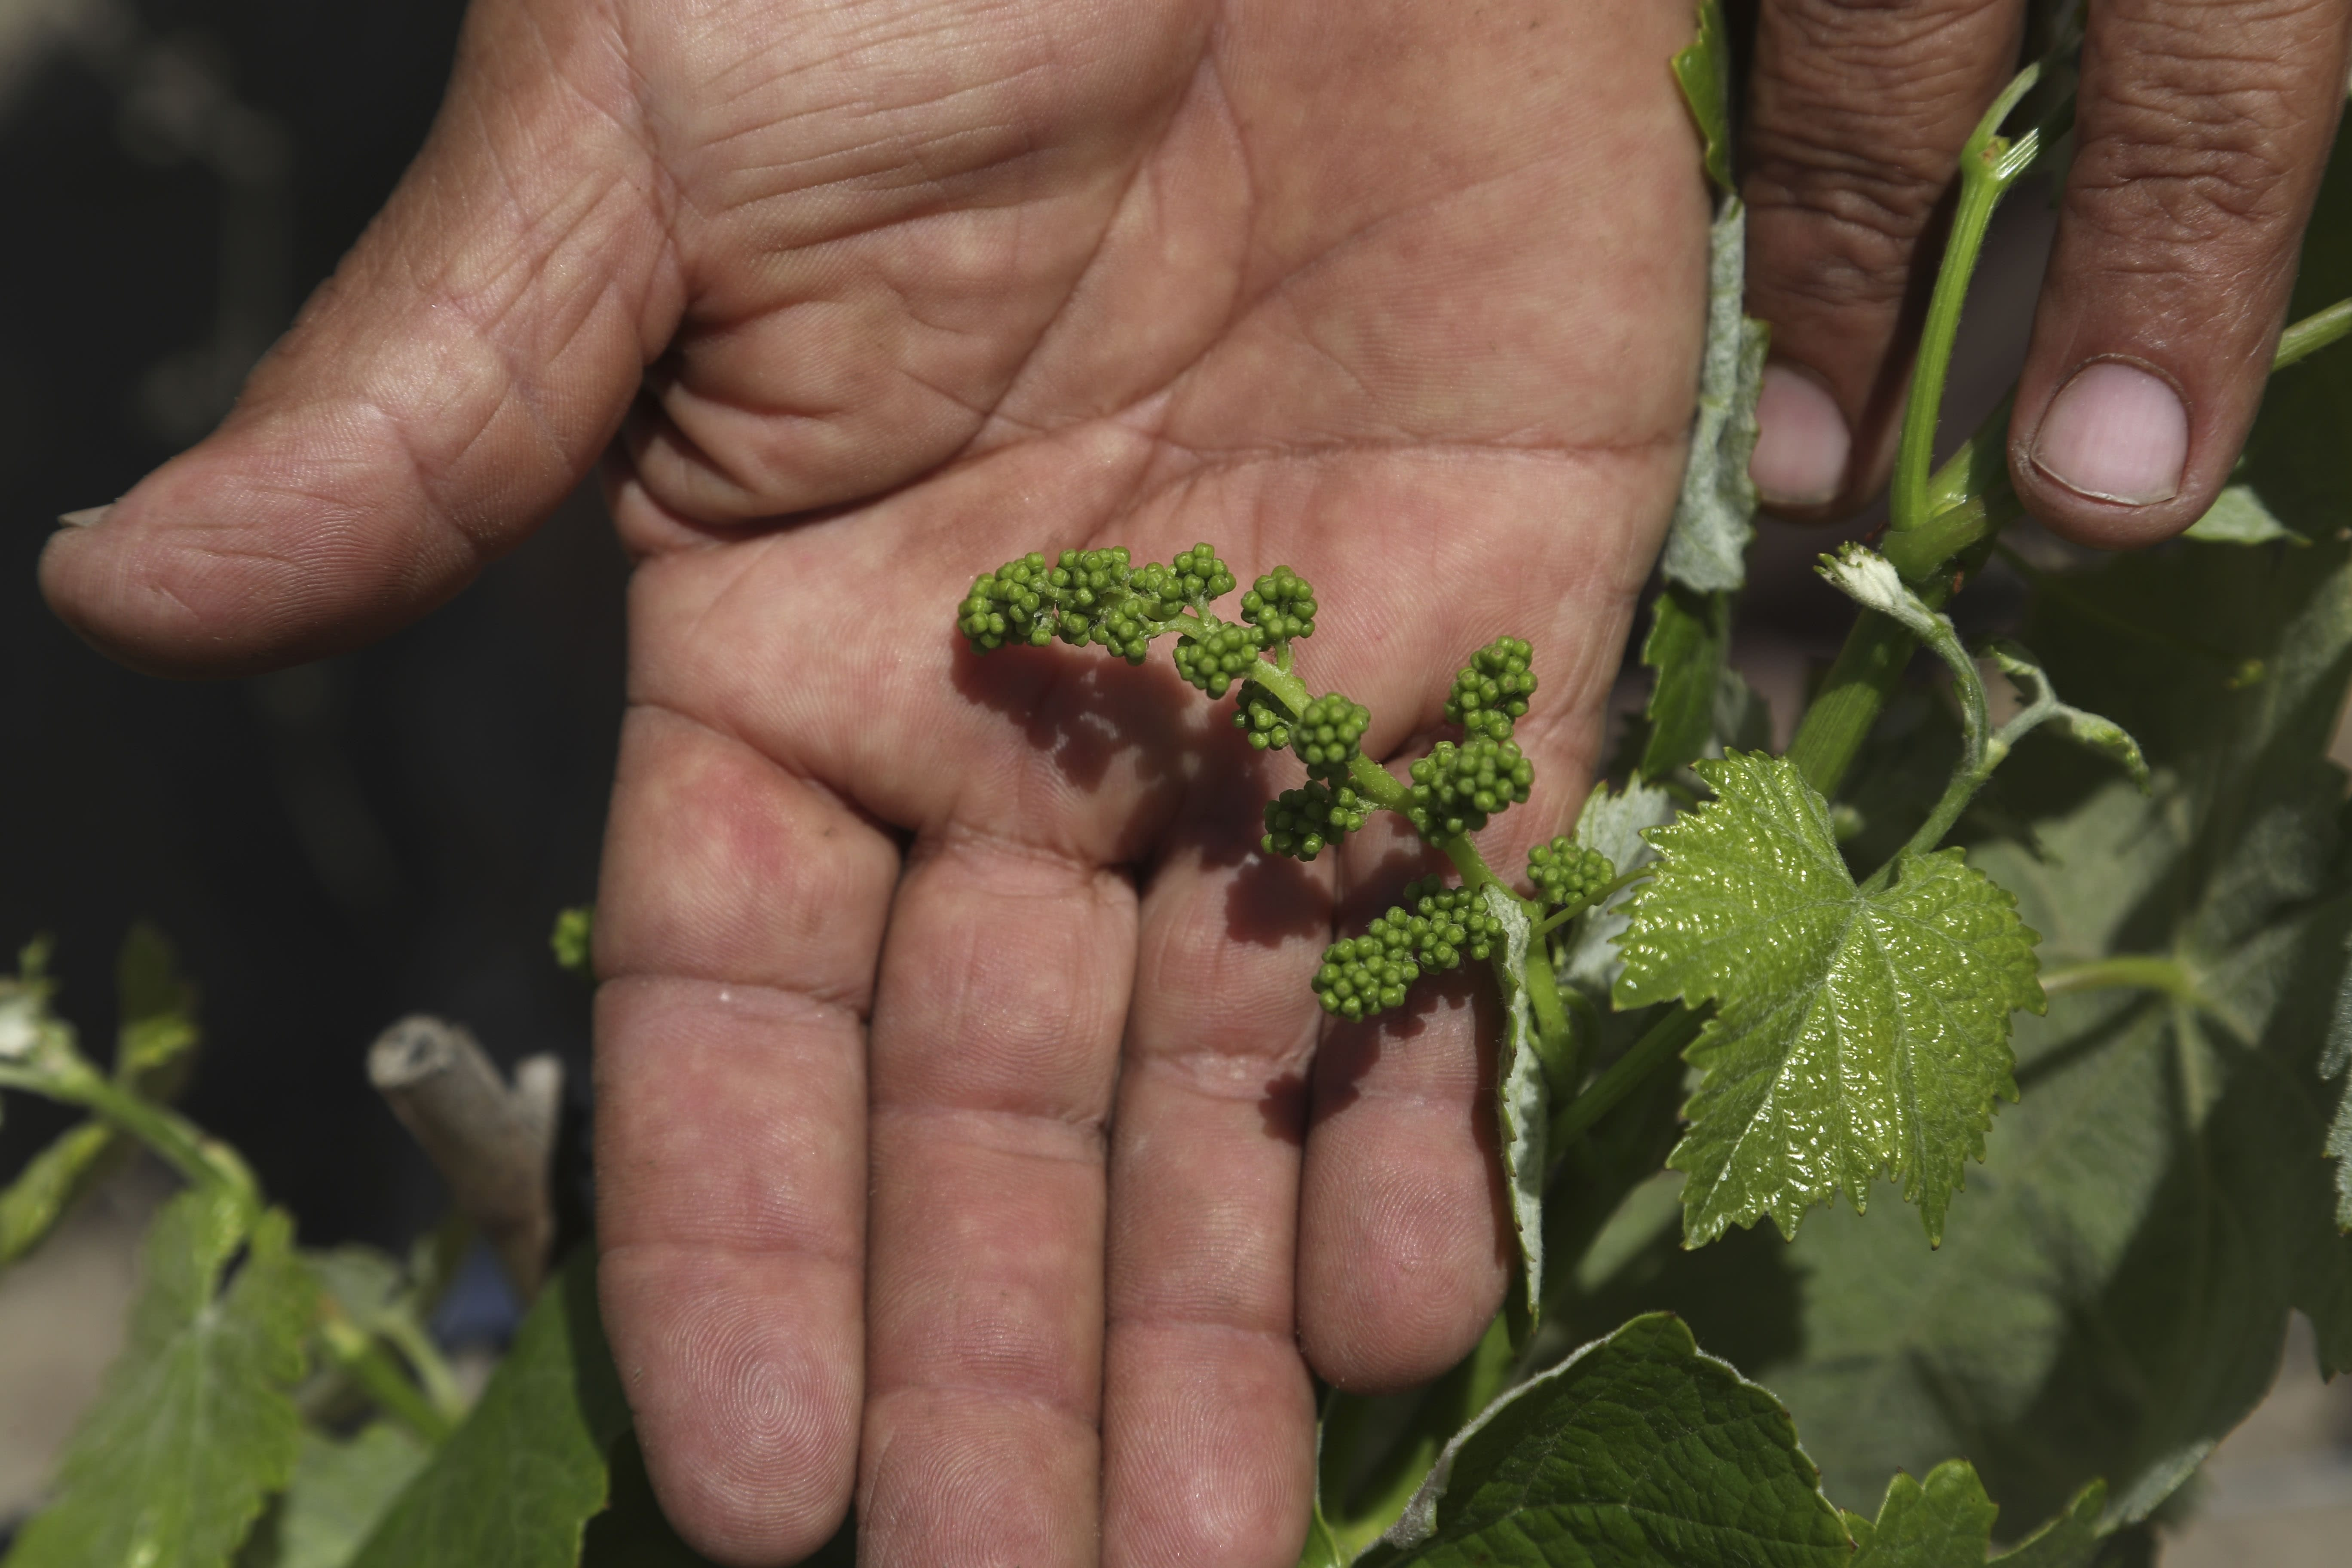 """Farmer Nicanor Tasaico shows newly formed """"quebranta"""" grapes, used to make non-aromatic or """"pure"""" Pisco, at his vineyard in Ica, Peru, Monday, Sept. 28, 2020. More than 500 Pisco producers have seen their sales collapse by half and thousands of grape growers have had their fields ruined because of the late harvests, because of the strict lockdown implemented to stop COVID-19. (AP Photo/Martin Mejia)"""